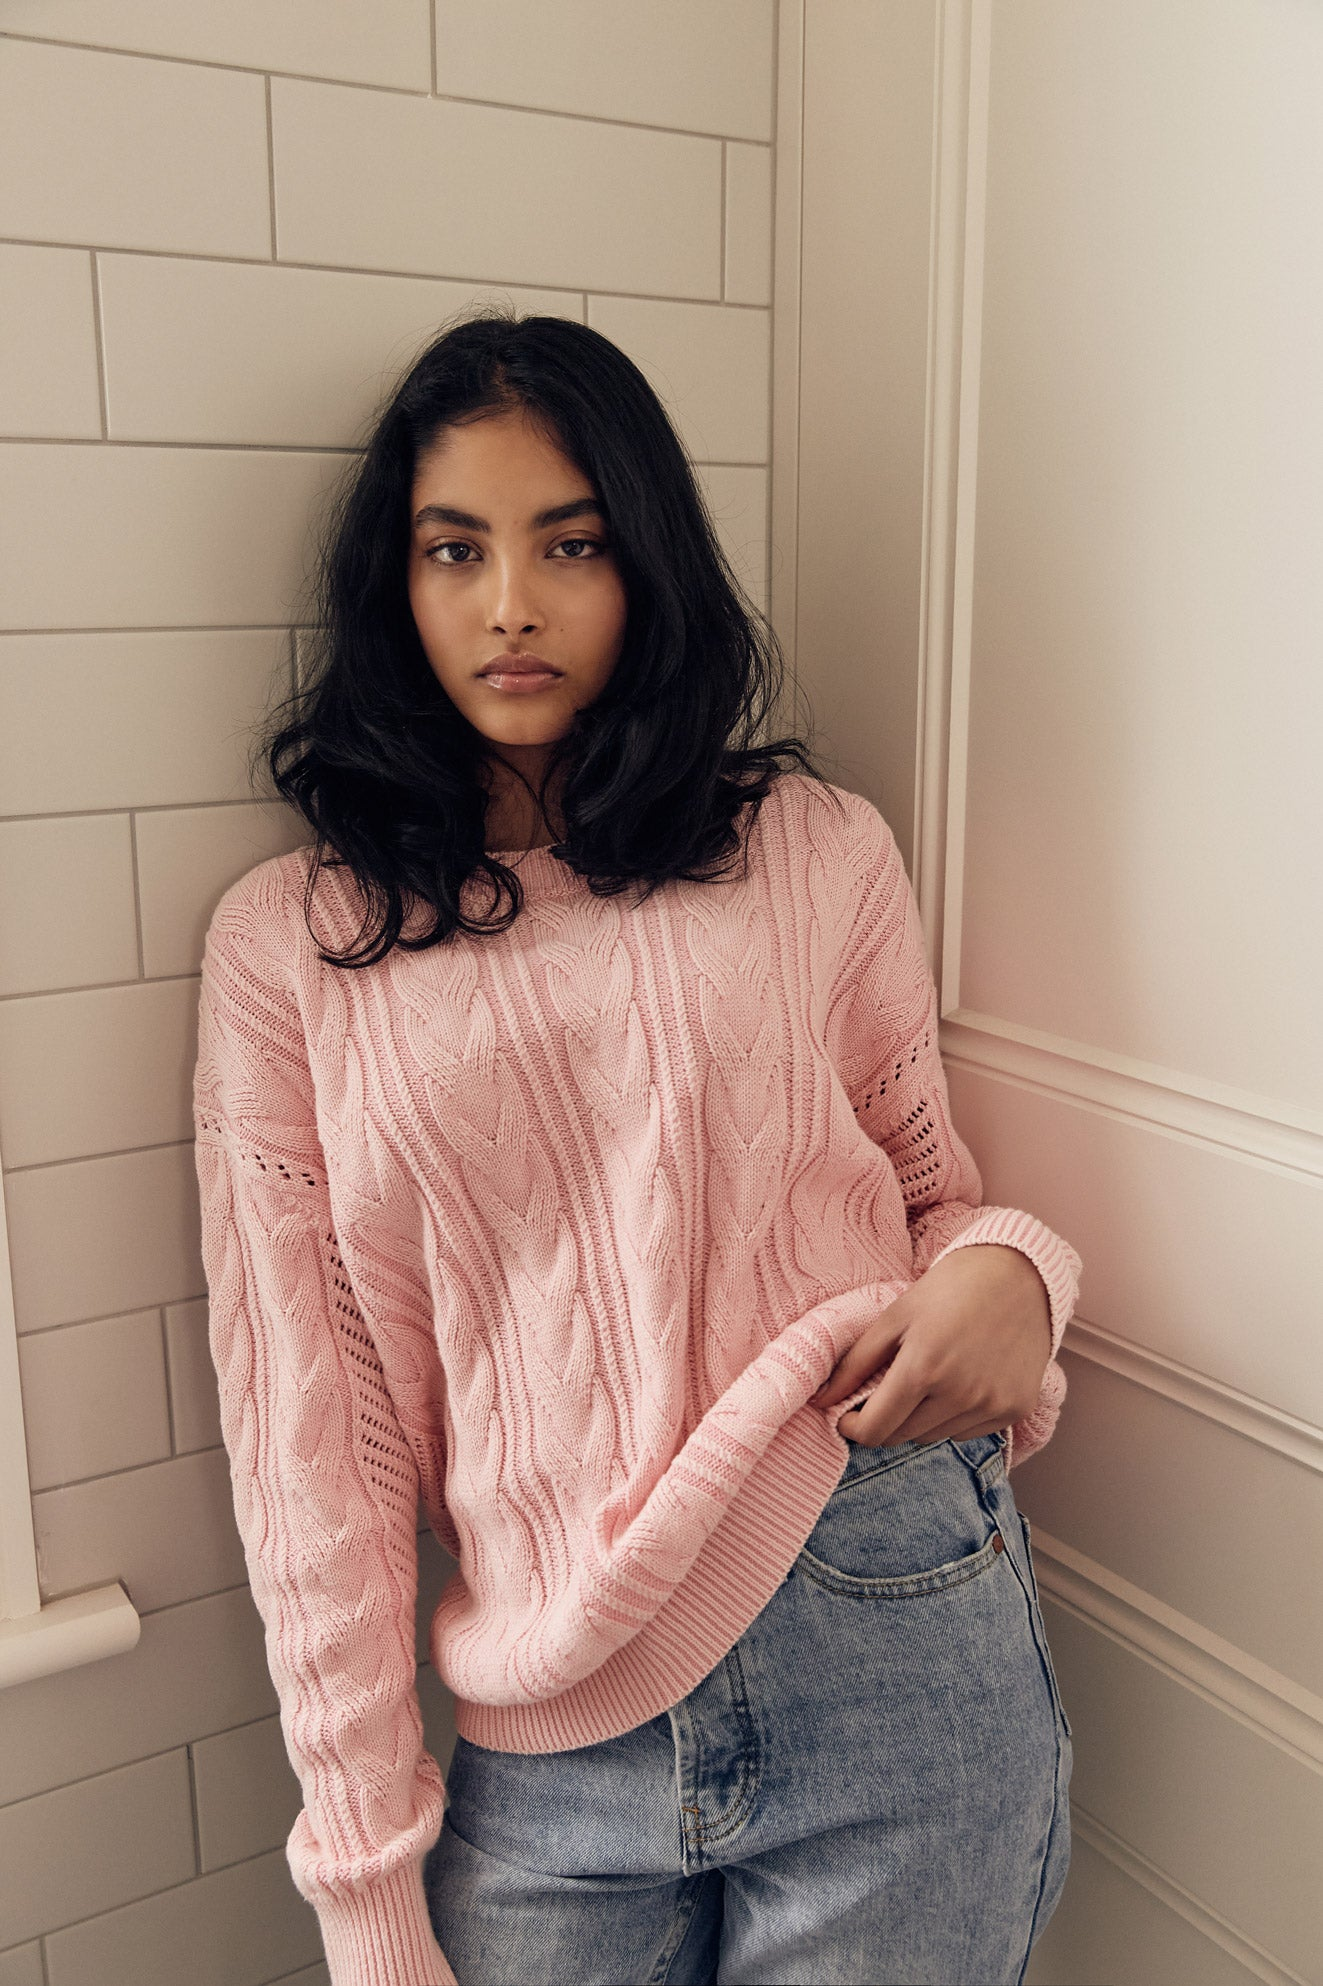 Kinney 100% cotton Mateo Knit in Pink - Autumn/Winter 2021 Women's Clothing brand - Also available in Indigo